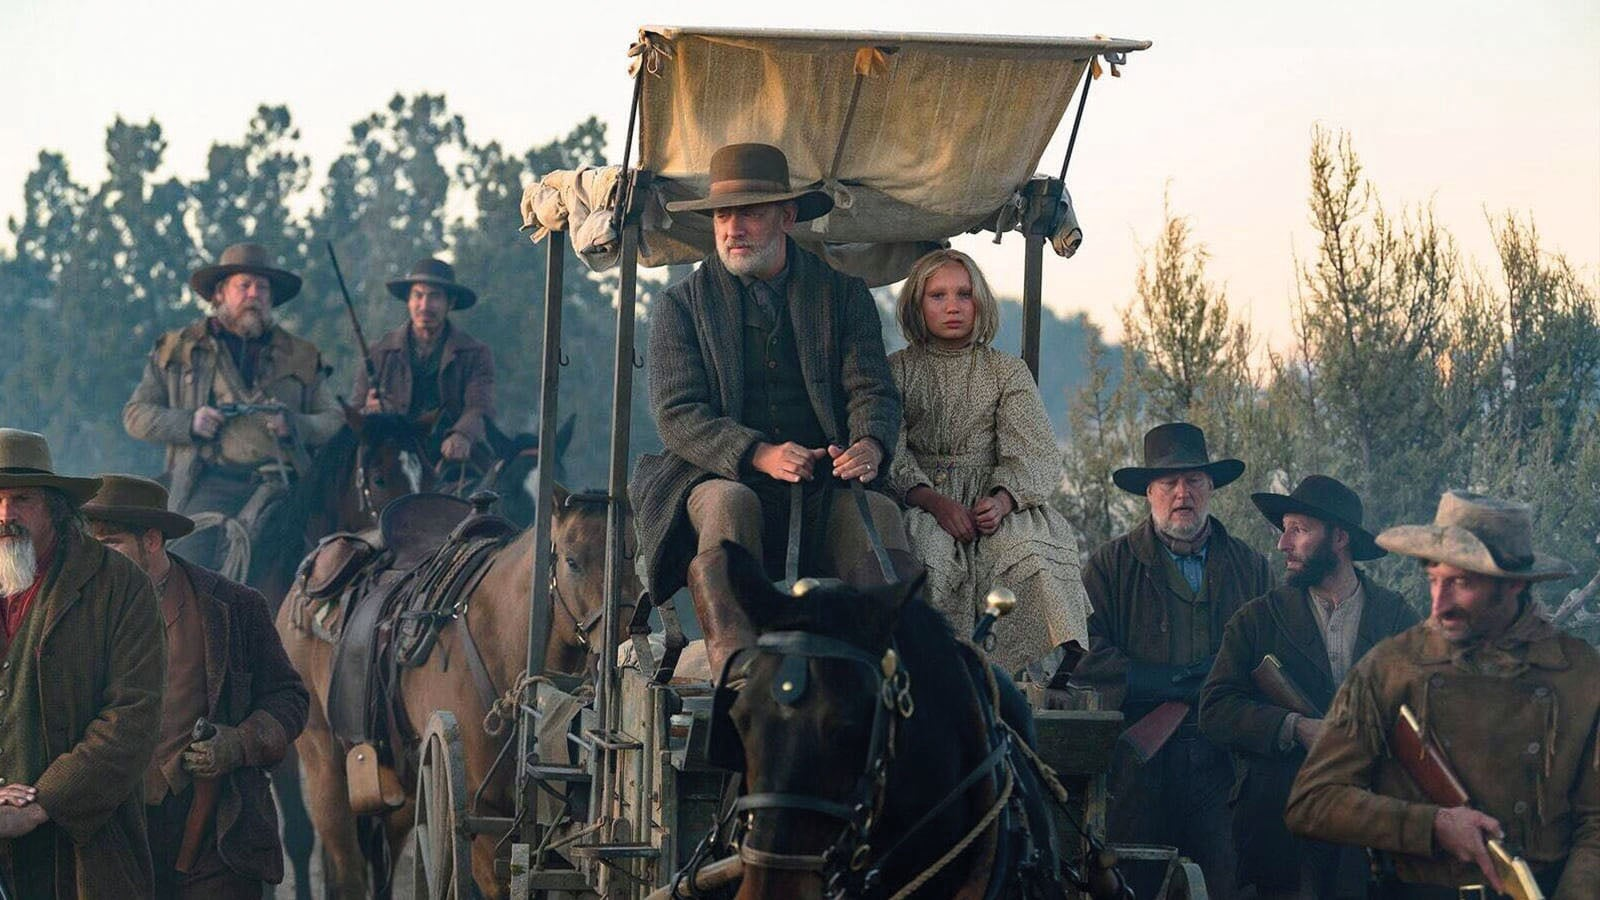 Tom Hanks breathes humanity into the Civil War-era Western News of the World